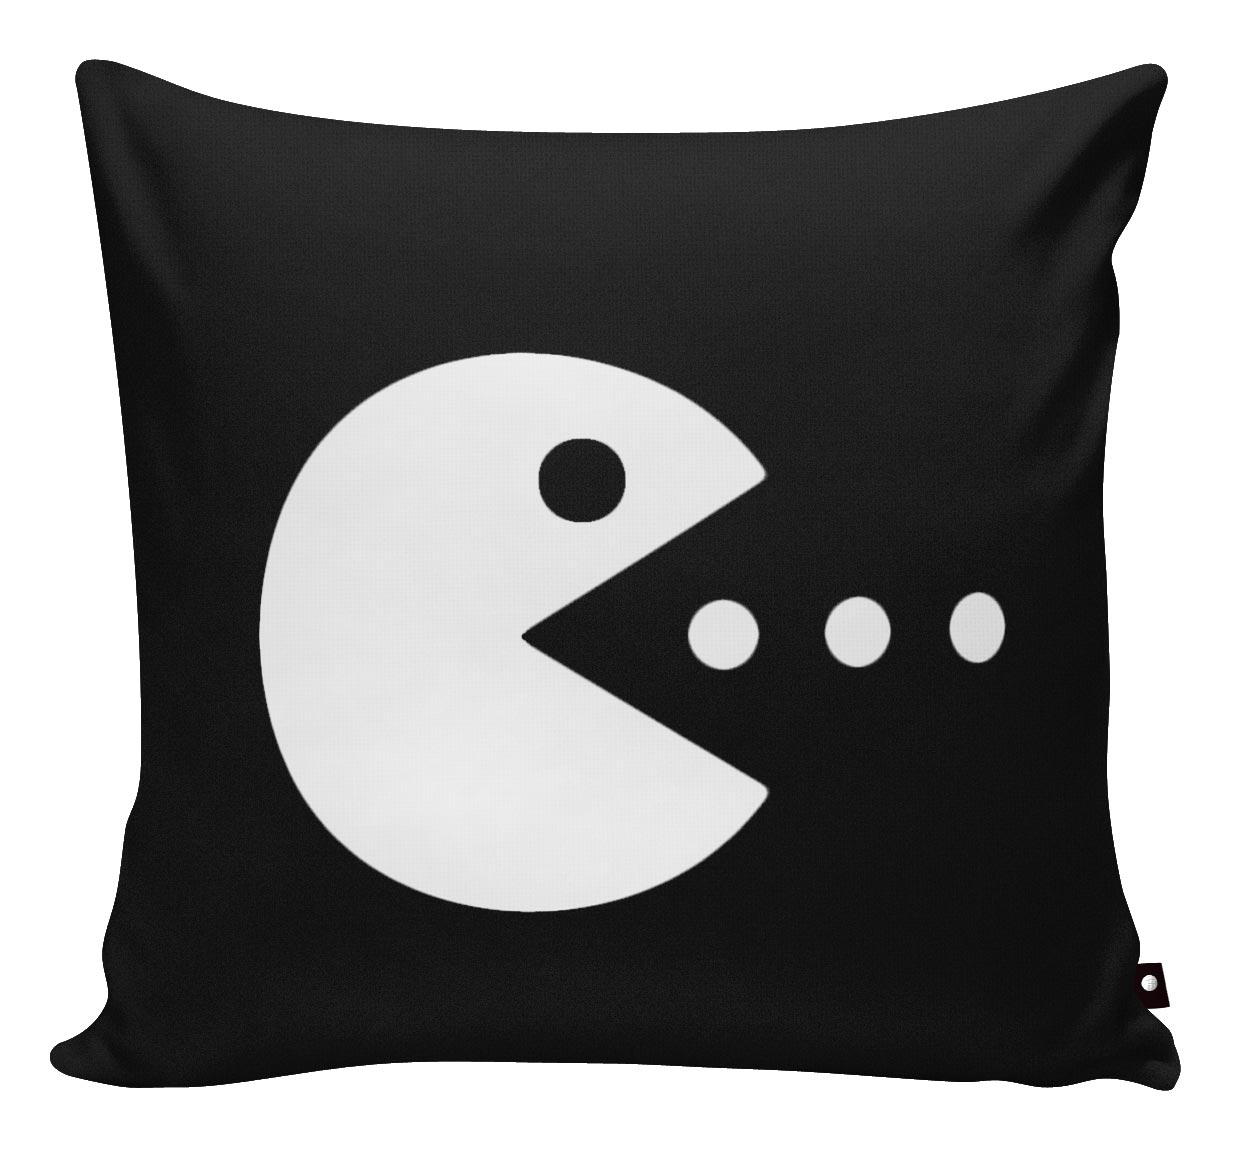 SCATTER PILLOW PAC MAN - Georgie & Moon